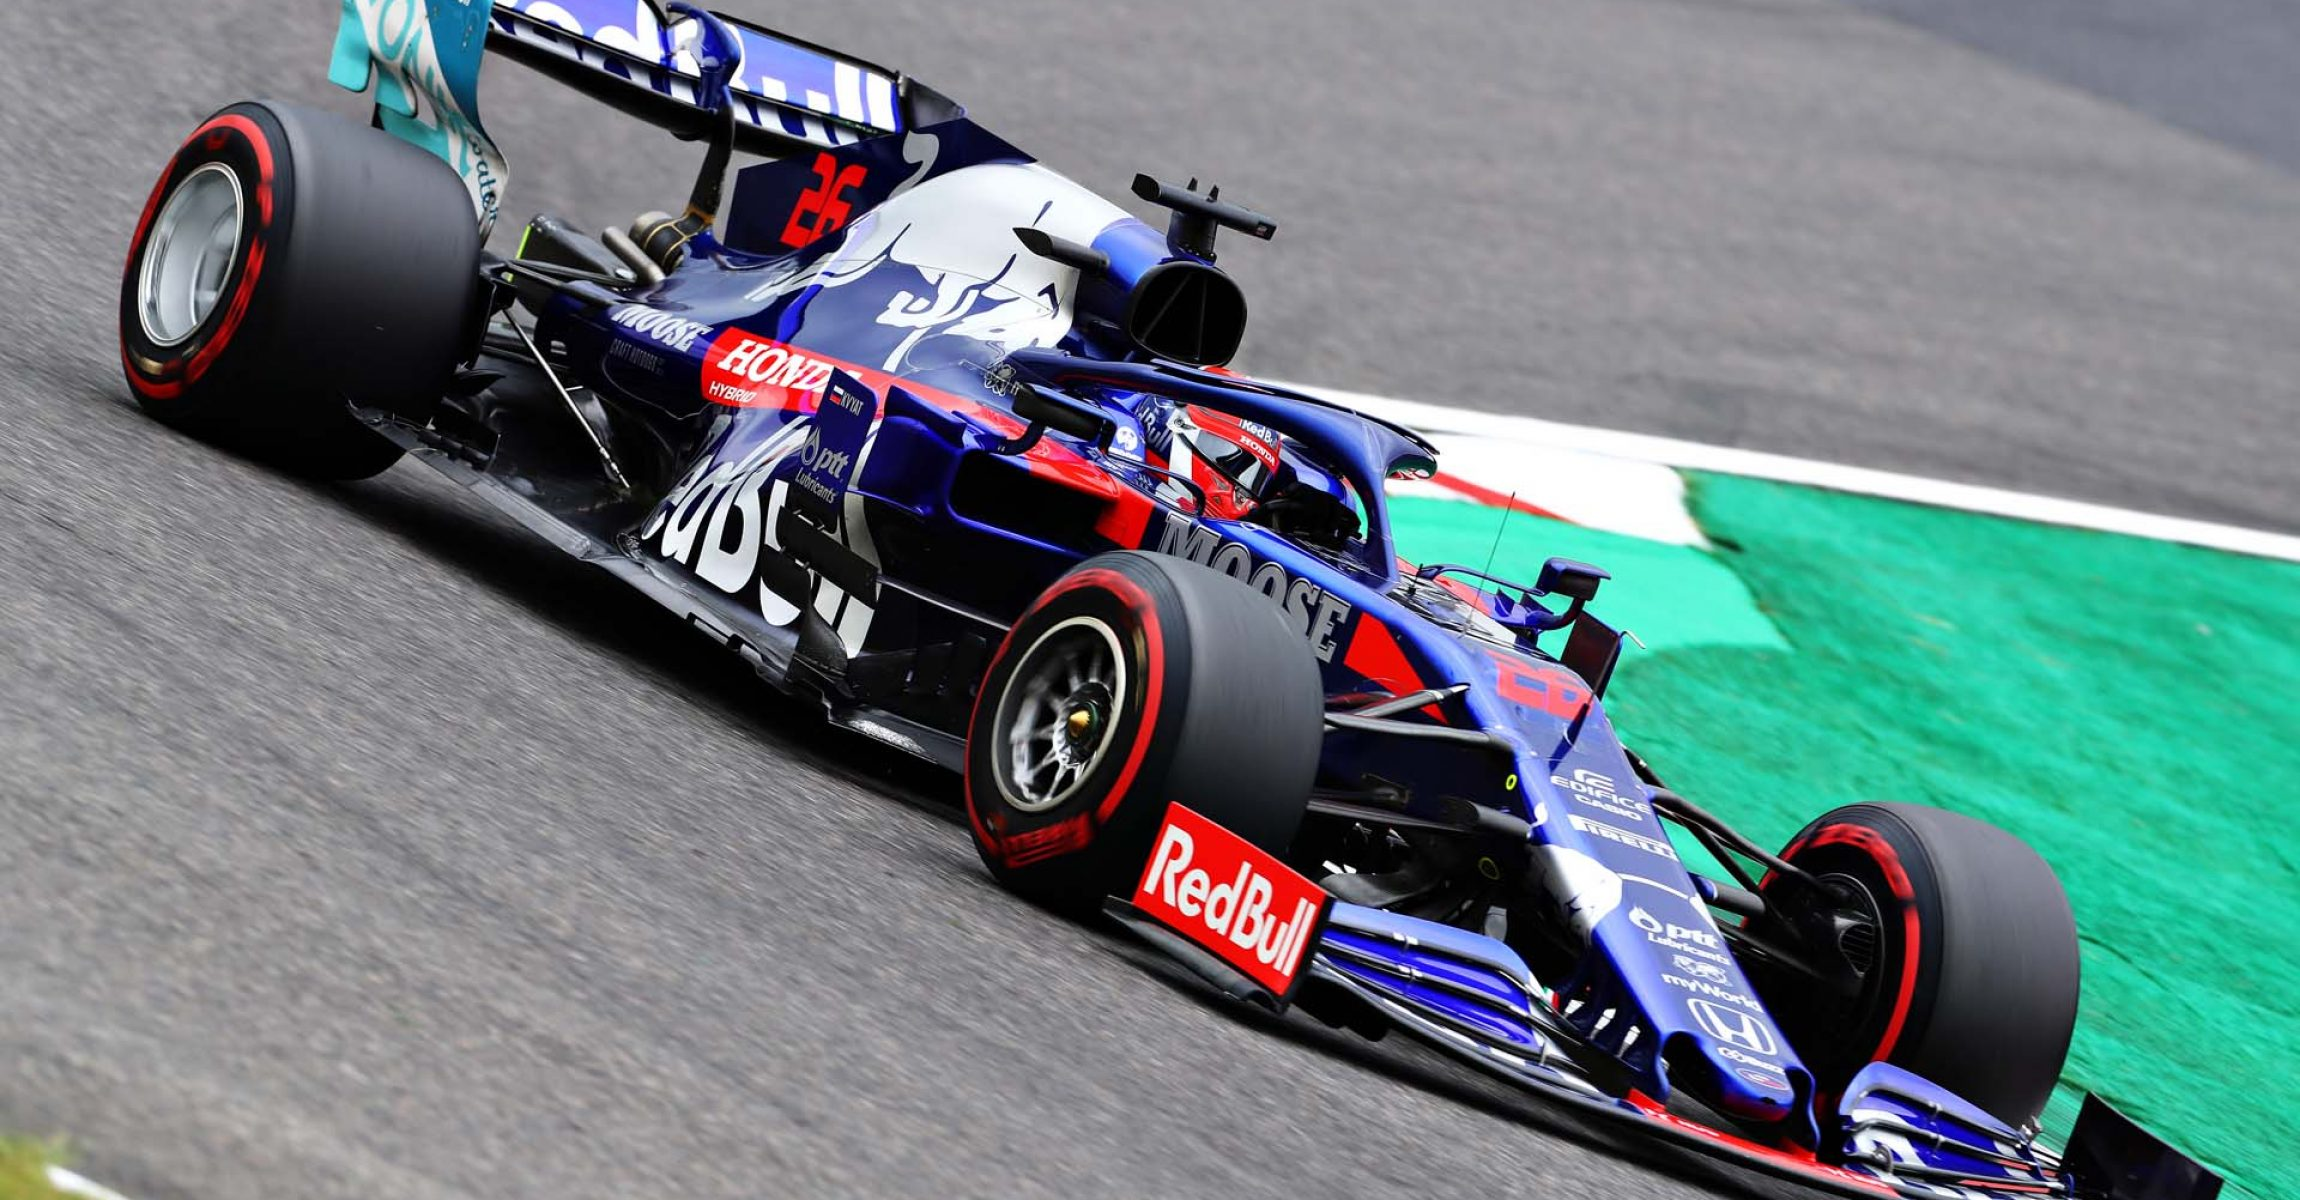 SUZUKA, JAPAN - OCTOBER 11: Daniil Kvyat driving the (26) Scuderia Toro Rosso STR14 Honda on track during practice for the F1 Grand Prix of Japan at Suzuka Circuit on October 11, 2019 in Suzuka, Japan. (Photo by Mark Thompson/Getty Images) // Getty Images / Red Bull Content Pool // AP-21UAJYF2N2111 // Usage for editorial use only //